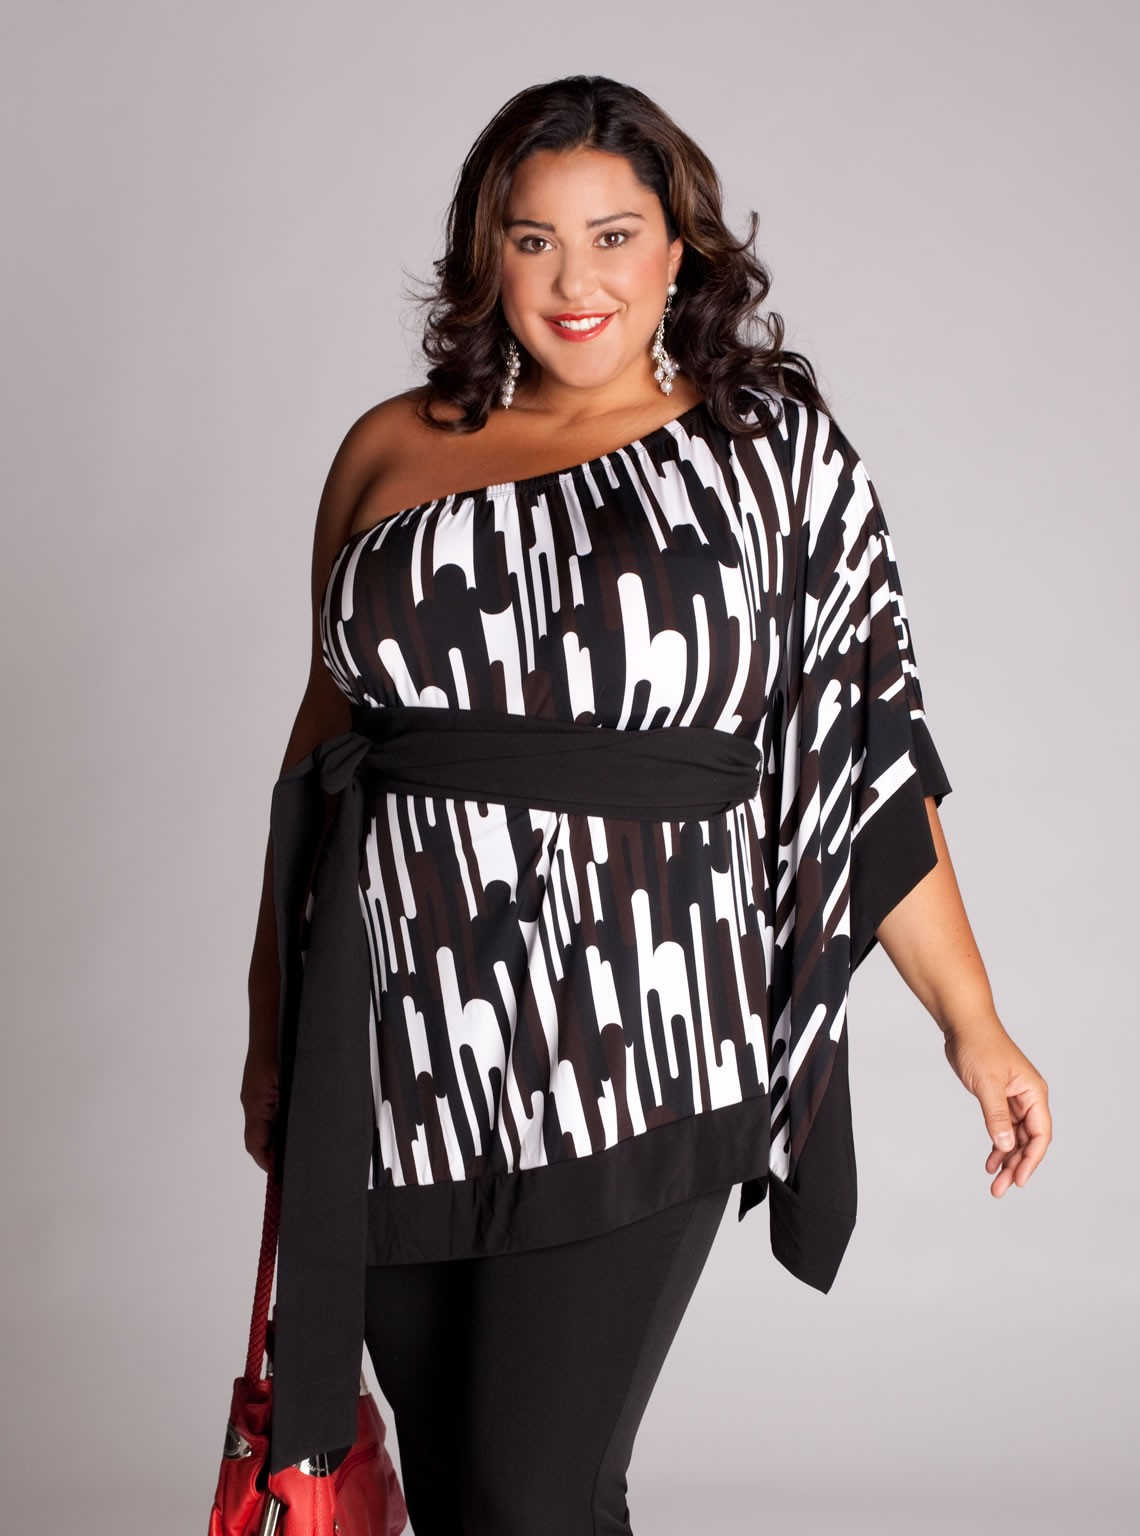 joi de vivre tunic 62 Guess who got mentioned in a great plus size fashion blog? Jessica London!